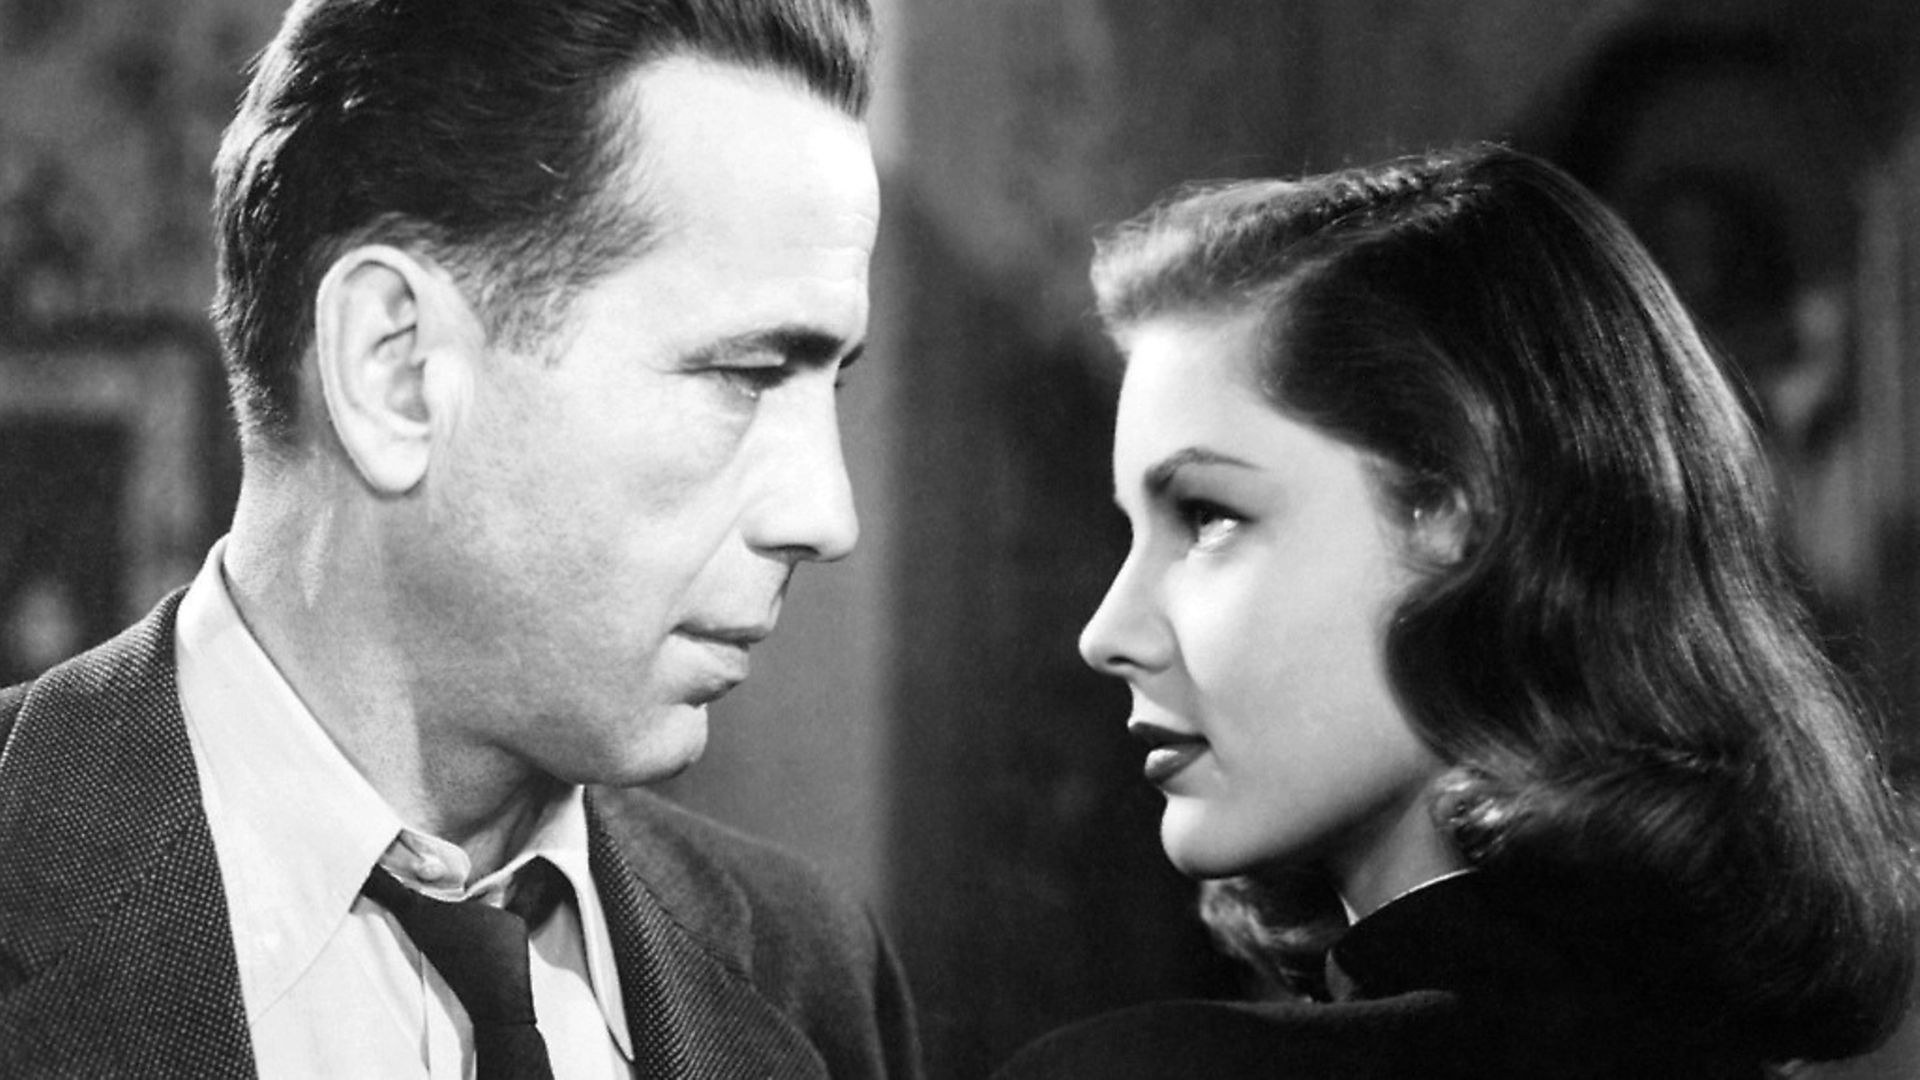 Humphrey Bogart and Lauren Bacall from the 1946 film The Big Sleep. Photograph: National Motion Picture Council/Wikimedia. - Credit: Archant